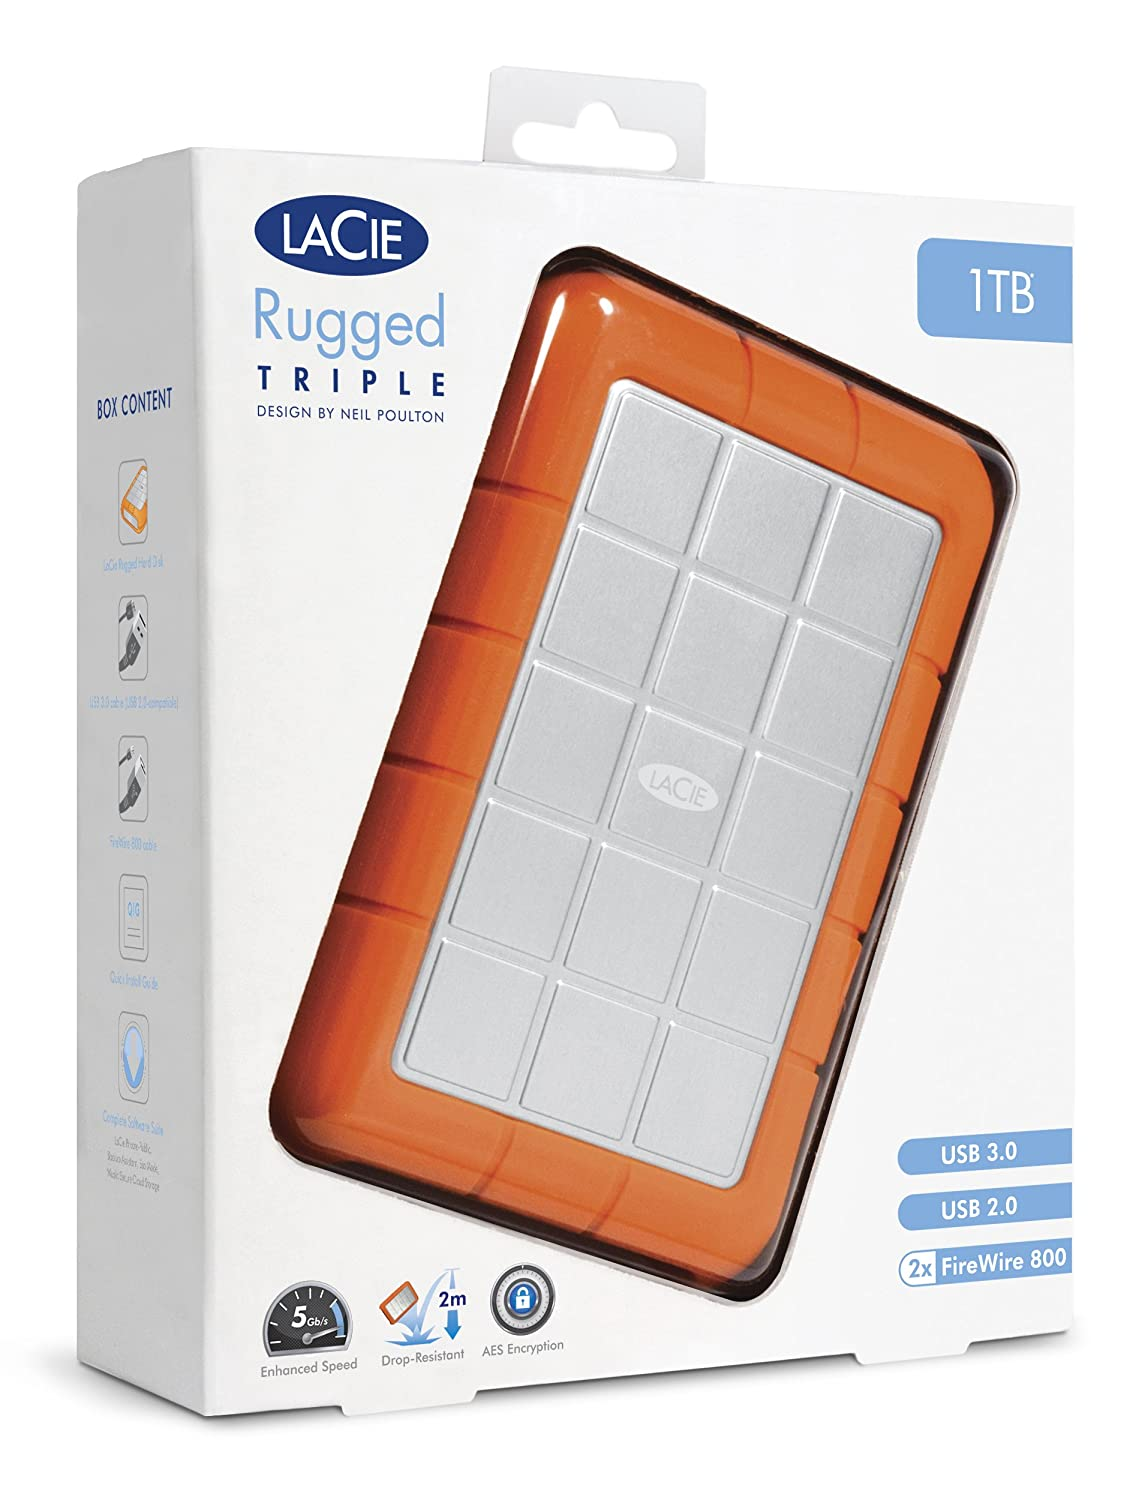 Amazon.com: LaCie Rugged Triple USB 3.0 / Firewire 800 5400 rpm ...